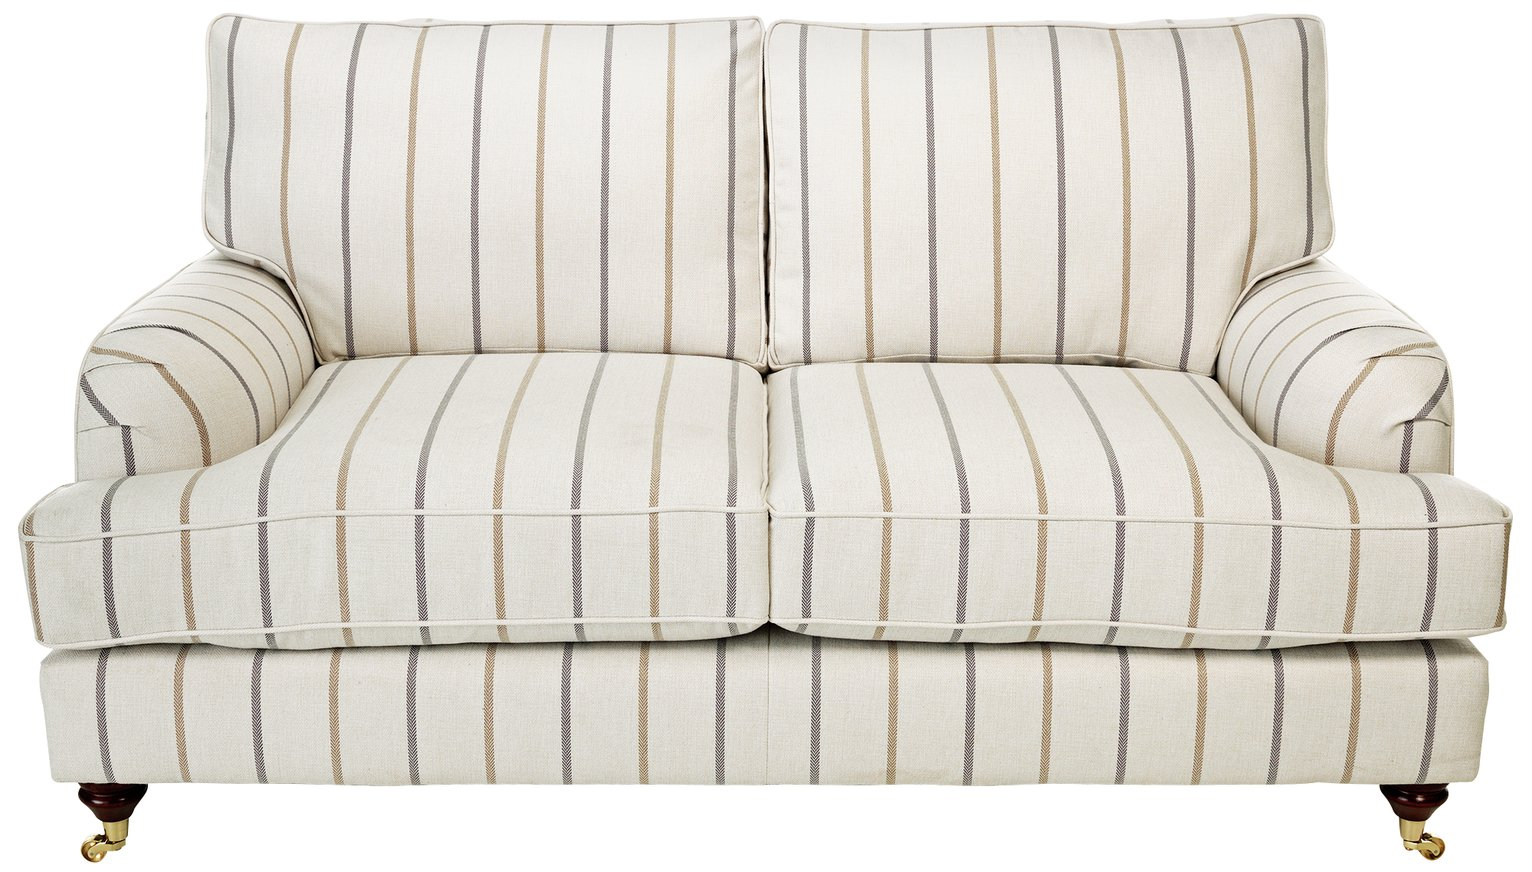 Image of Heart of House Abberton 2 Seater Sofa - Natural Stripe